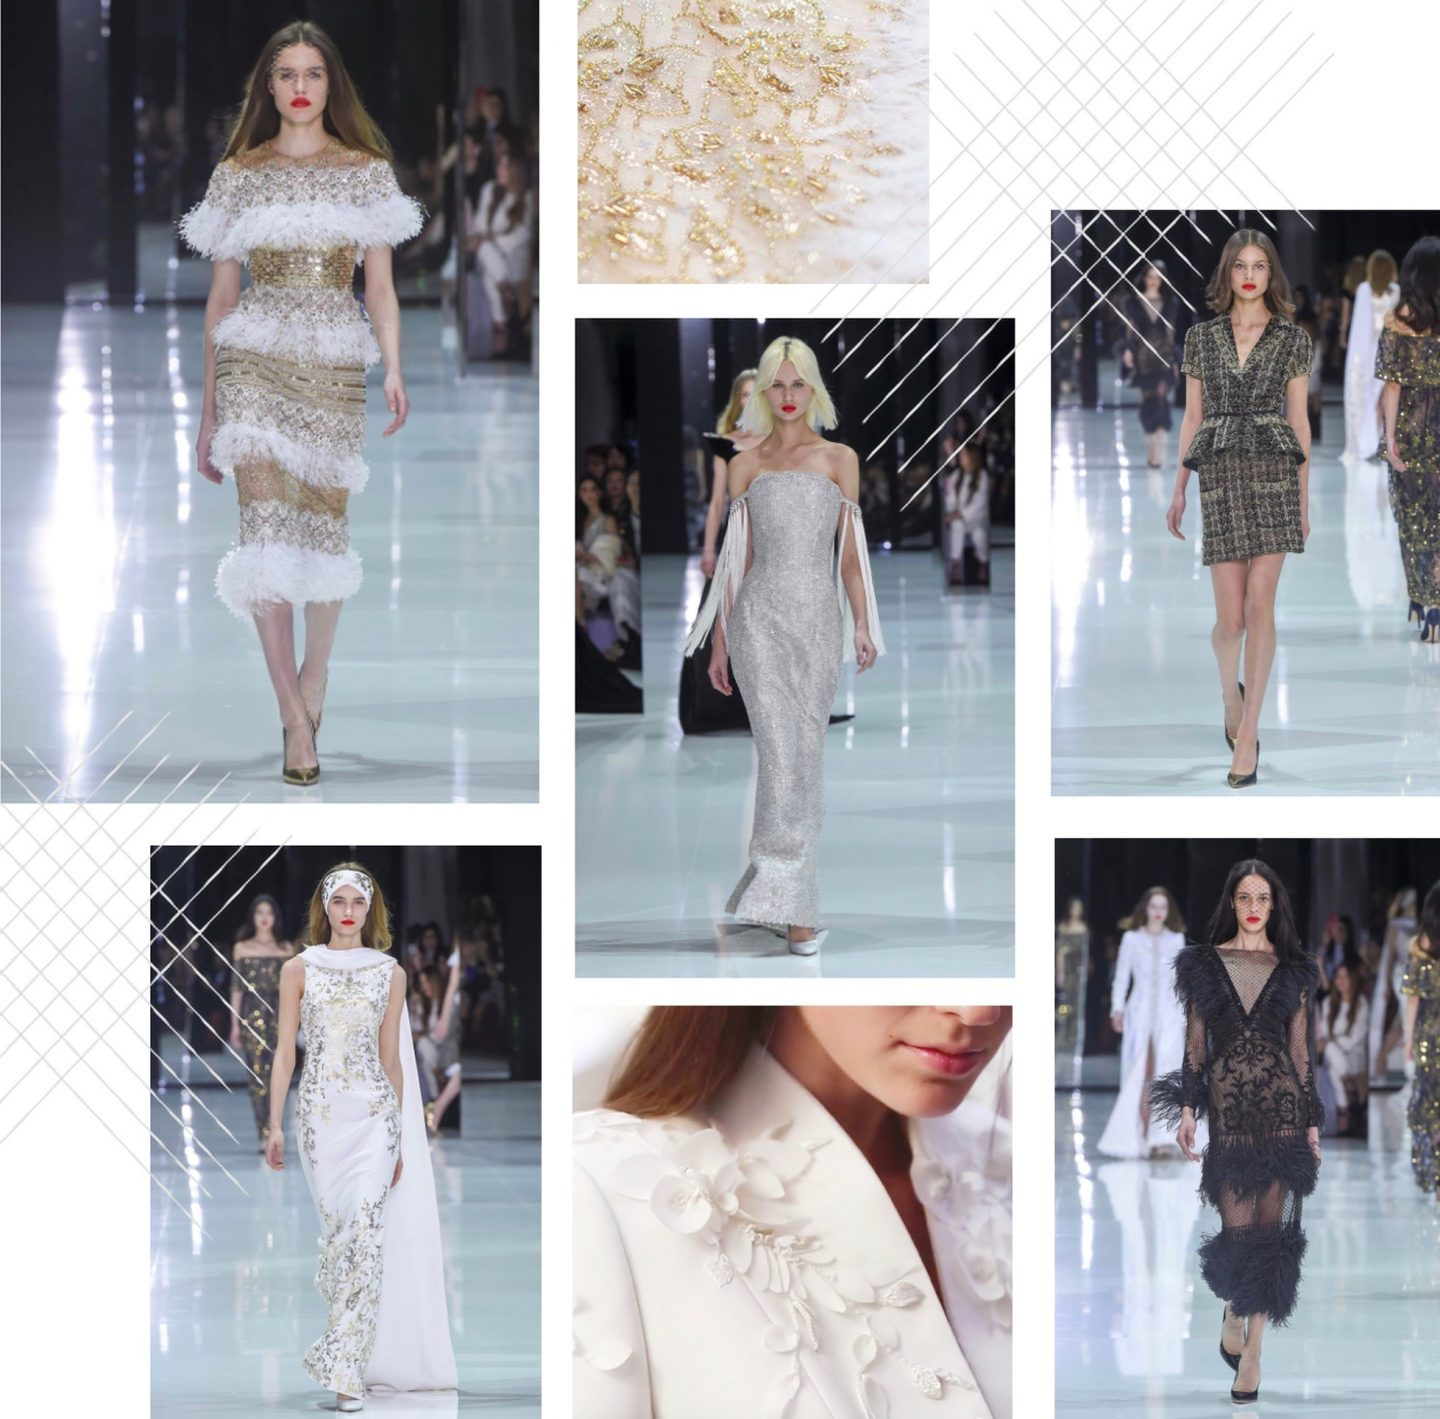 Ralph & Russo Haute Couture Spring 2018 x The Style Memo